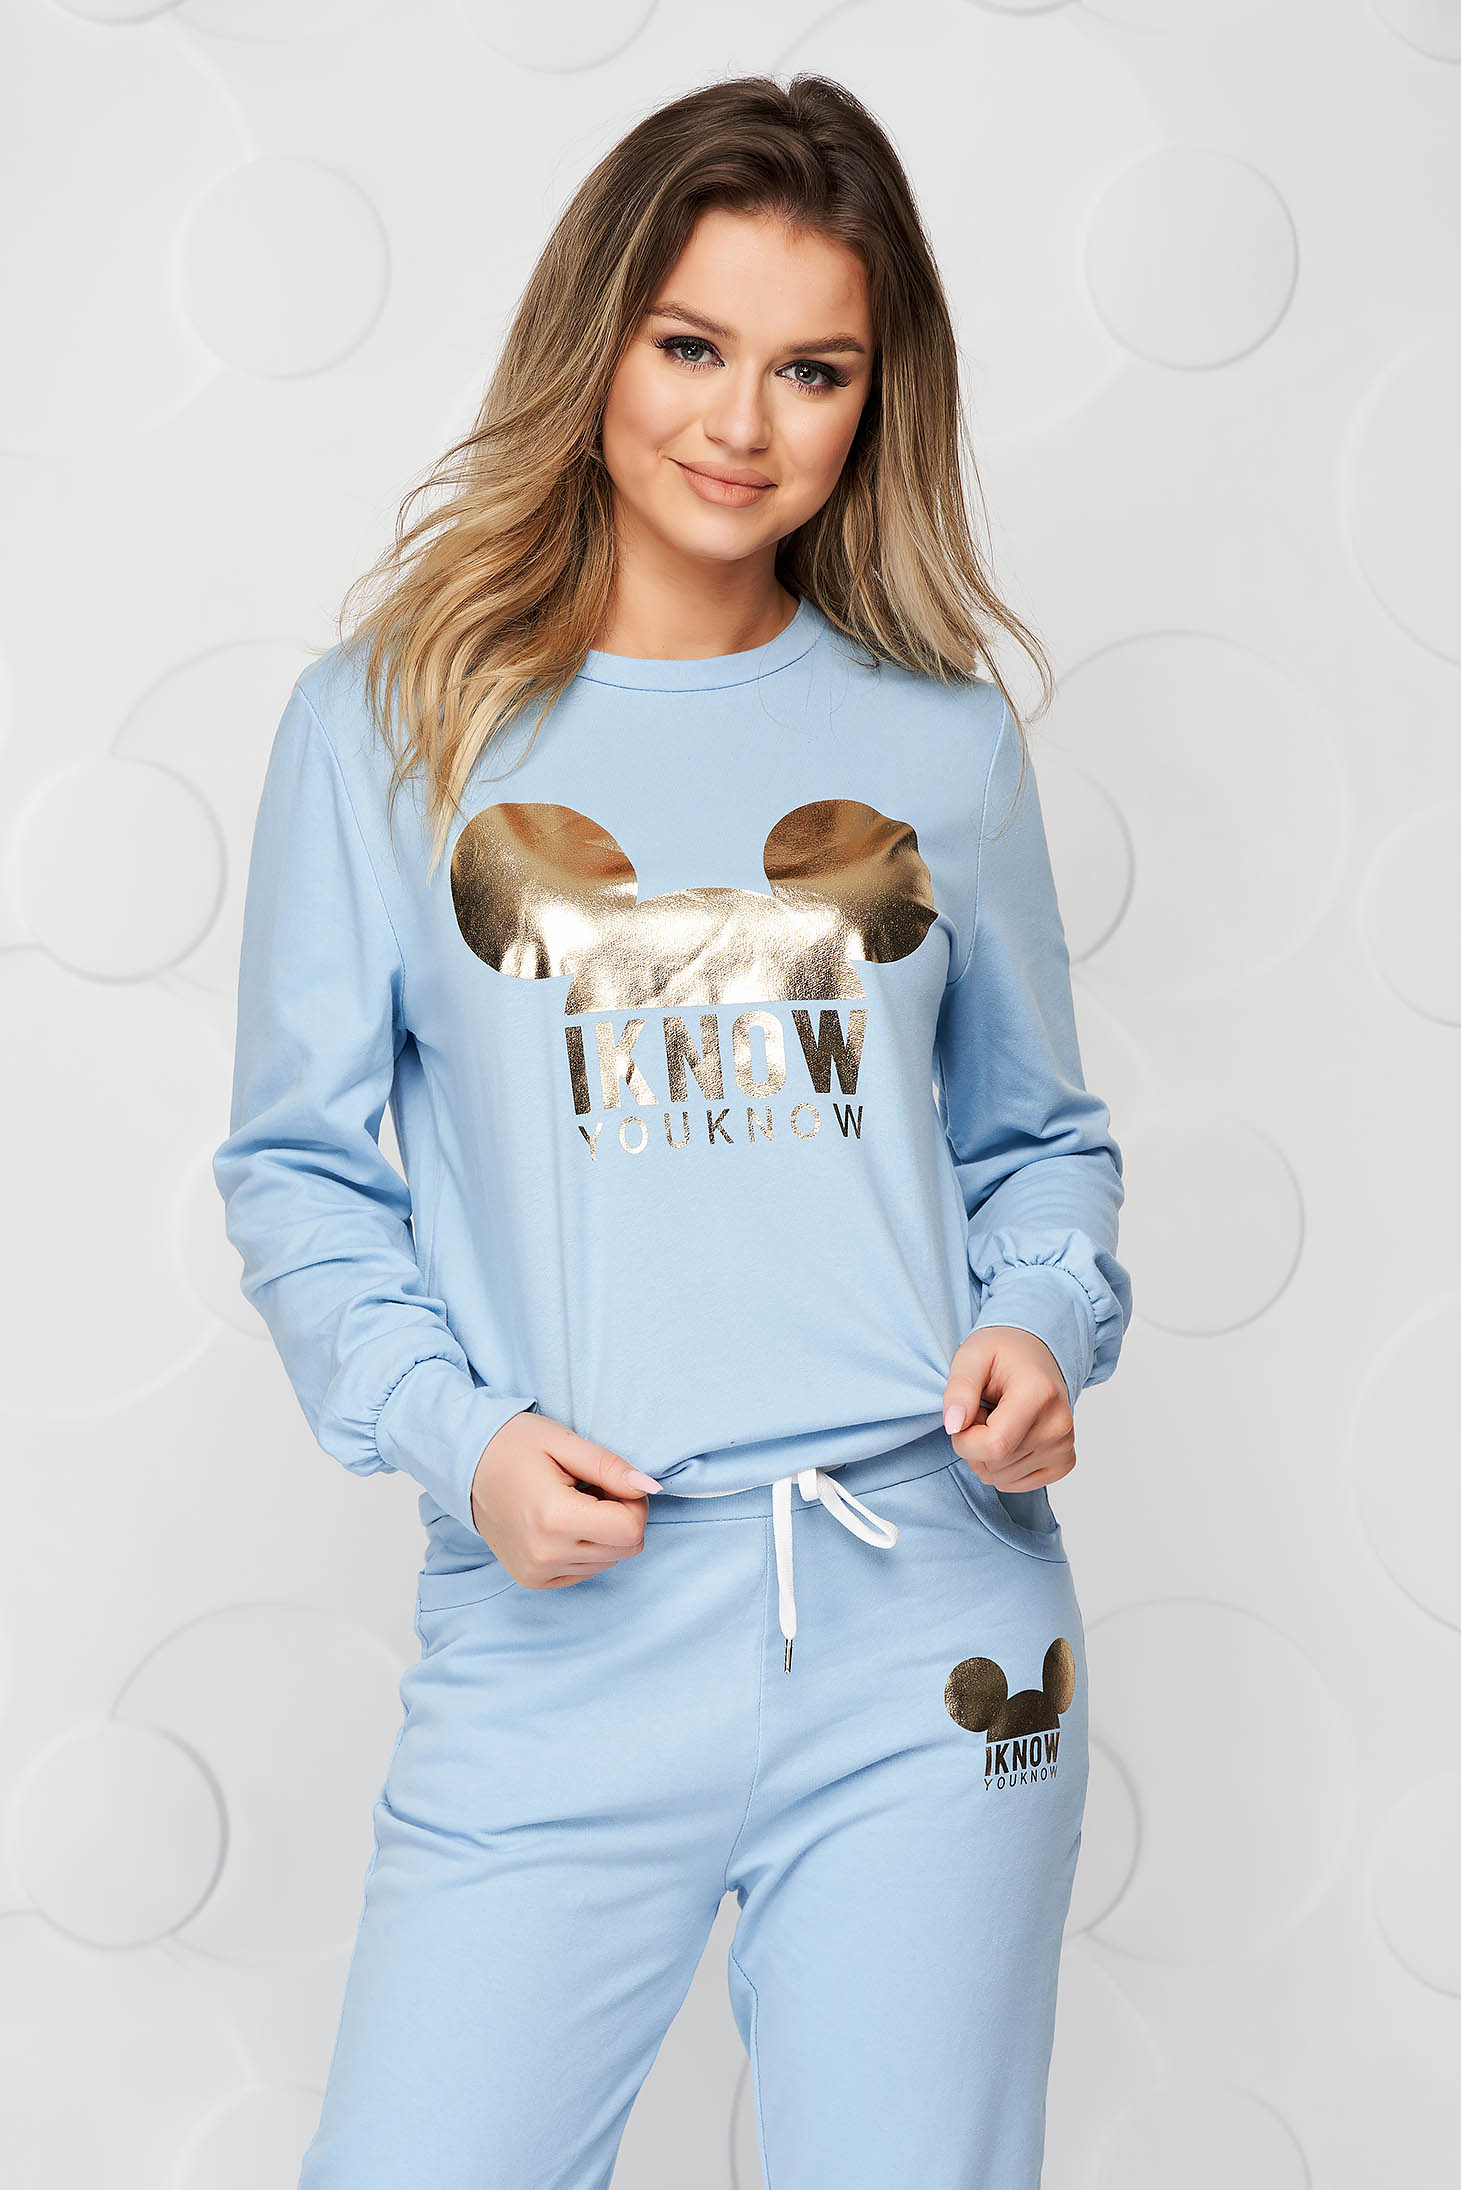 From two pieces lightblue sport 2 pieces loose fit with graphic details